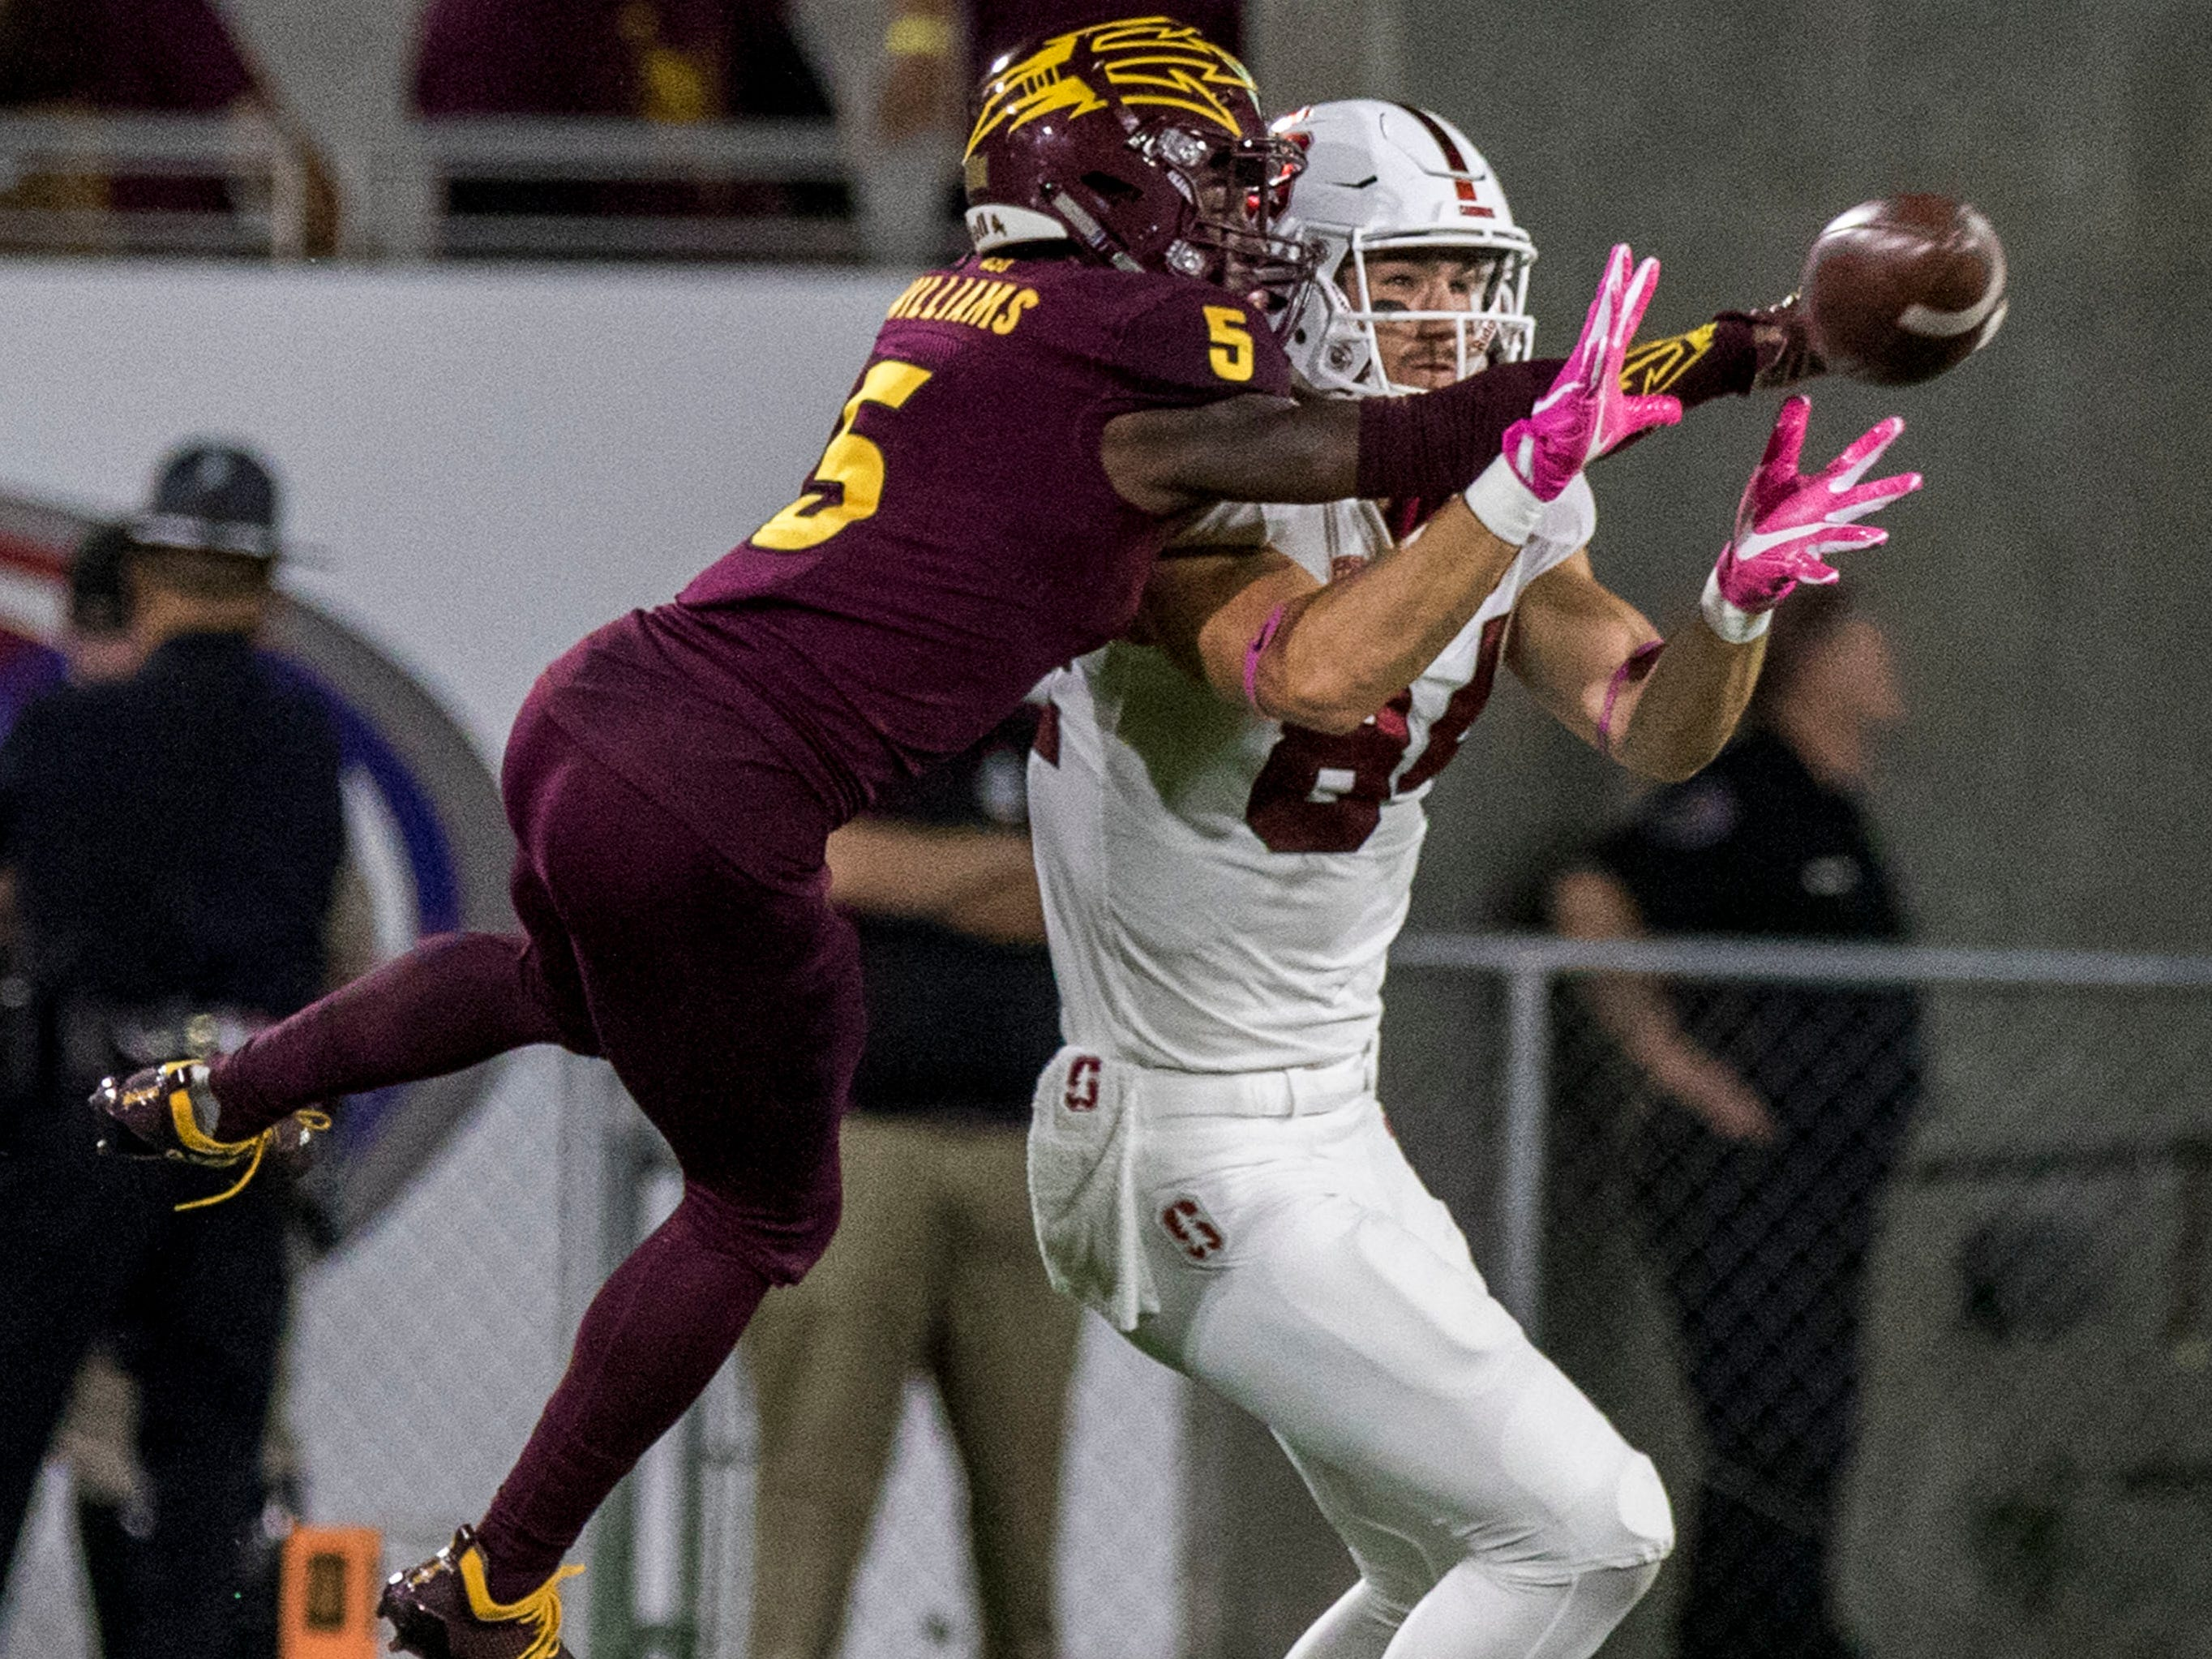 Arizona State's Kobe Williams (5) deflects the ball intended for Stanford's Colby Parkinson (84) during the first half of an NCAA college football game Thursday, Oct. 18, 2018, in Tempe, Ariz.